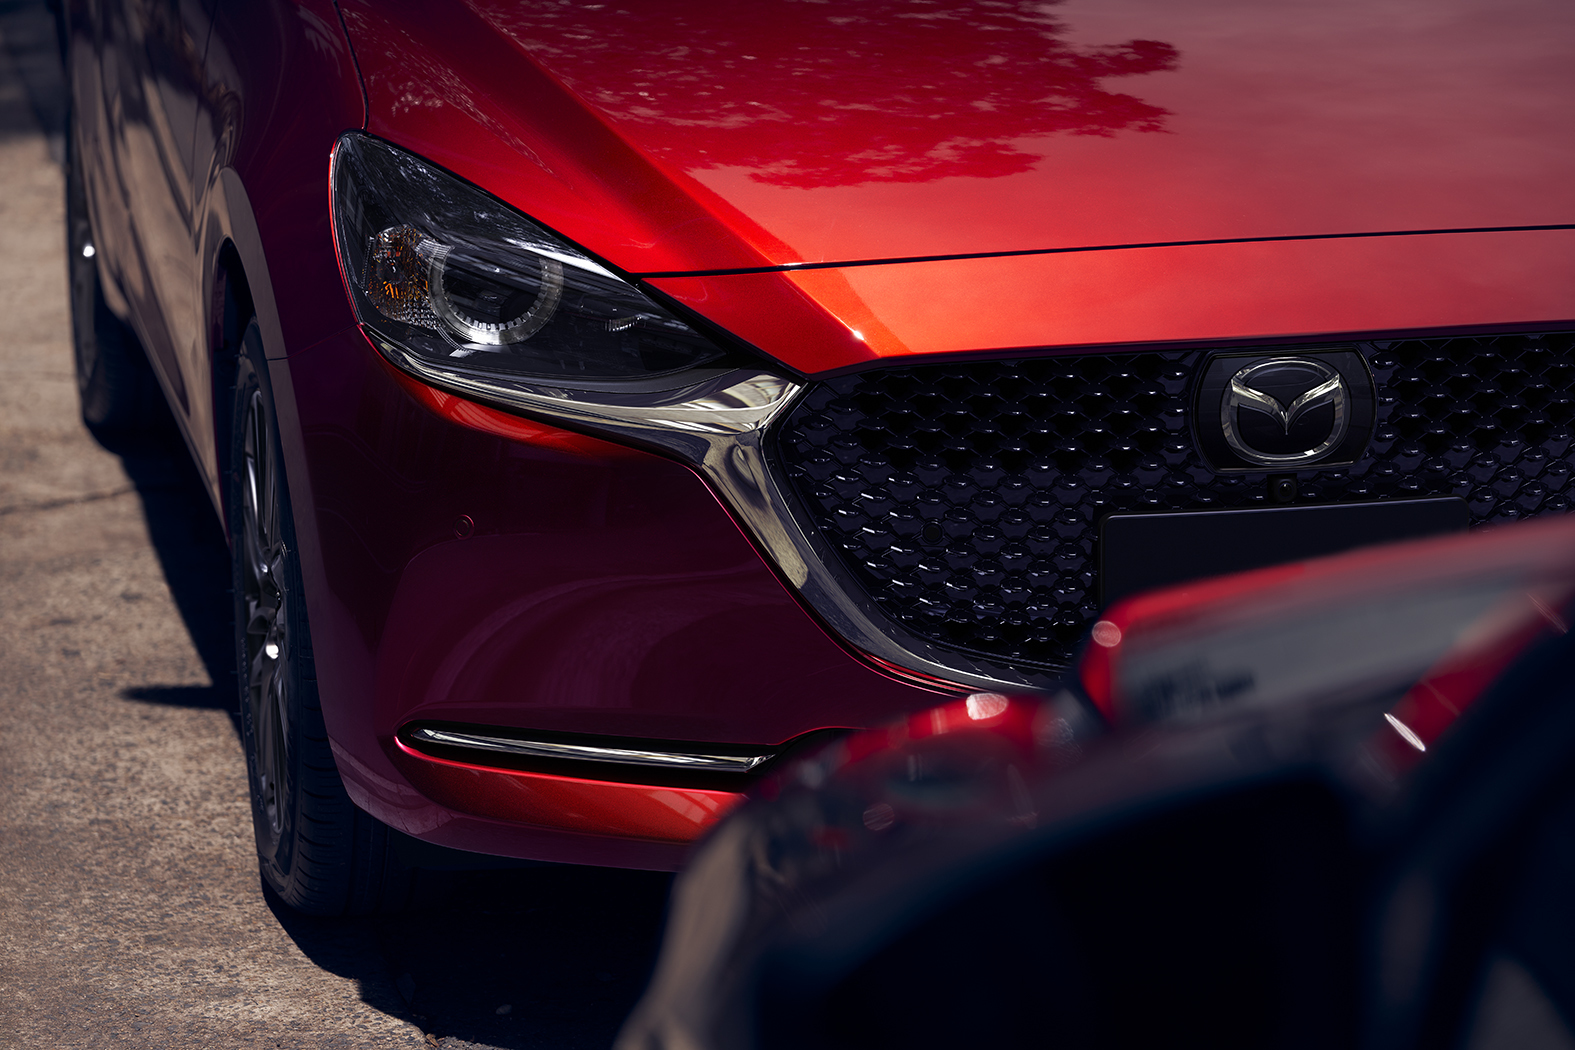 New Mazda 2 1.5-liter 'Skyactiv-G' Engine Comes With a Host of Innovations